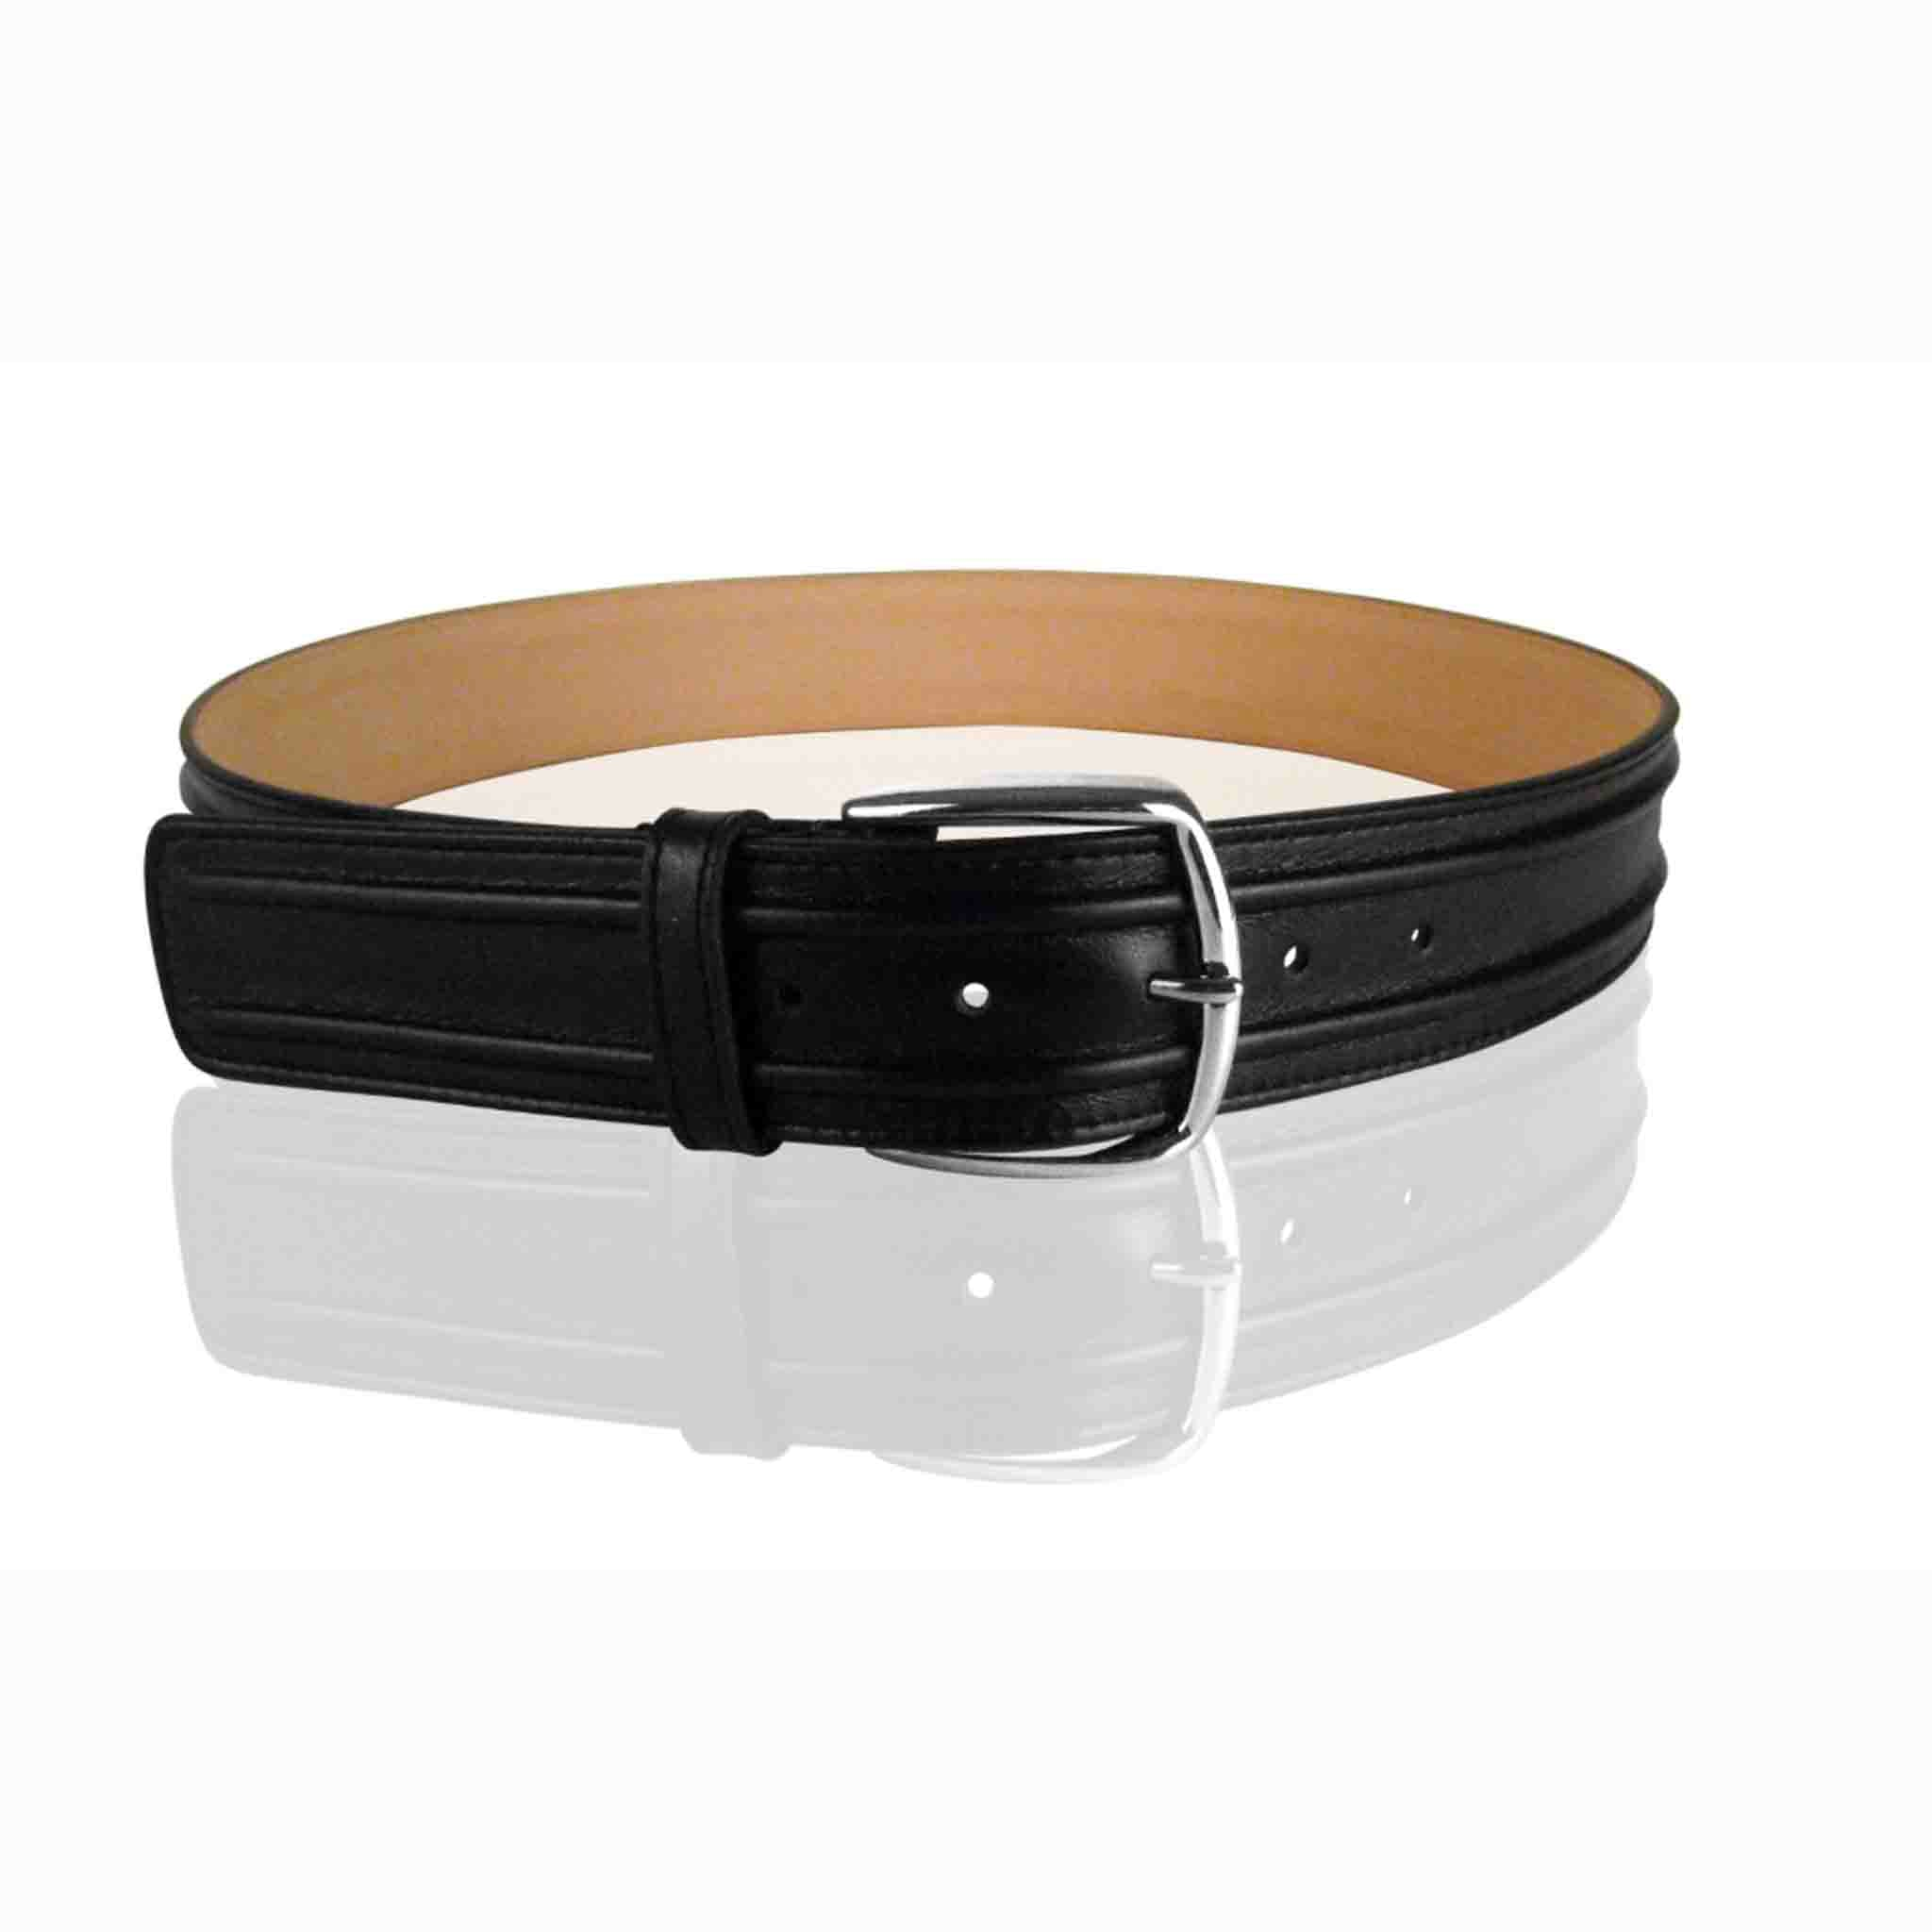 BLACK LEATHER BELT MEN'S ROHR